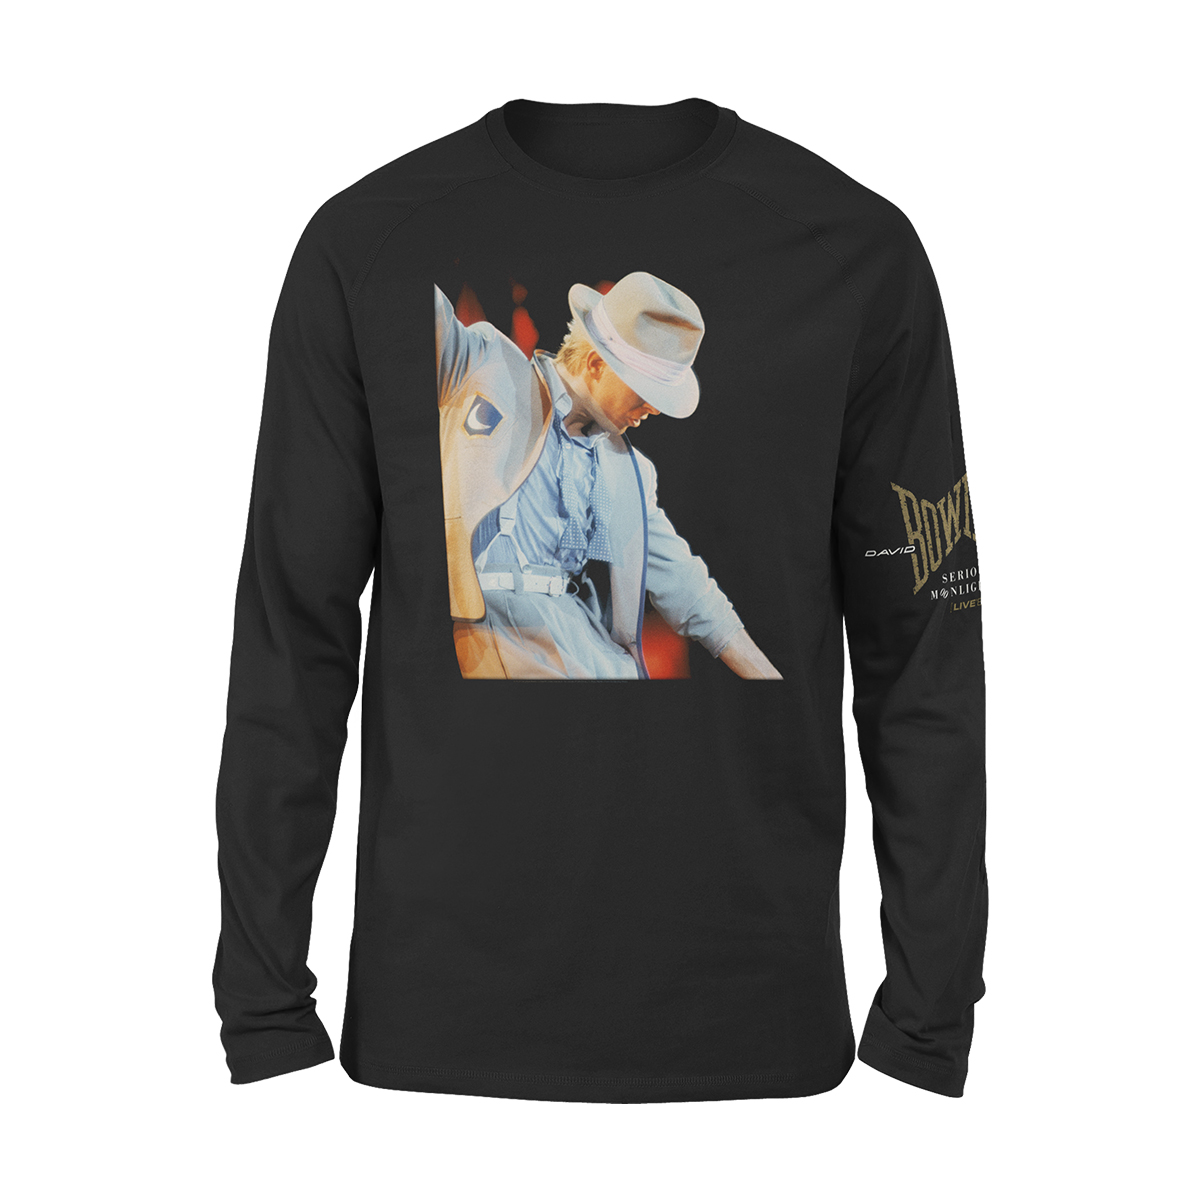 Bowie Serious Moonlight '83 Longsleeve T-shirt